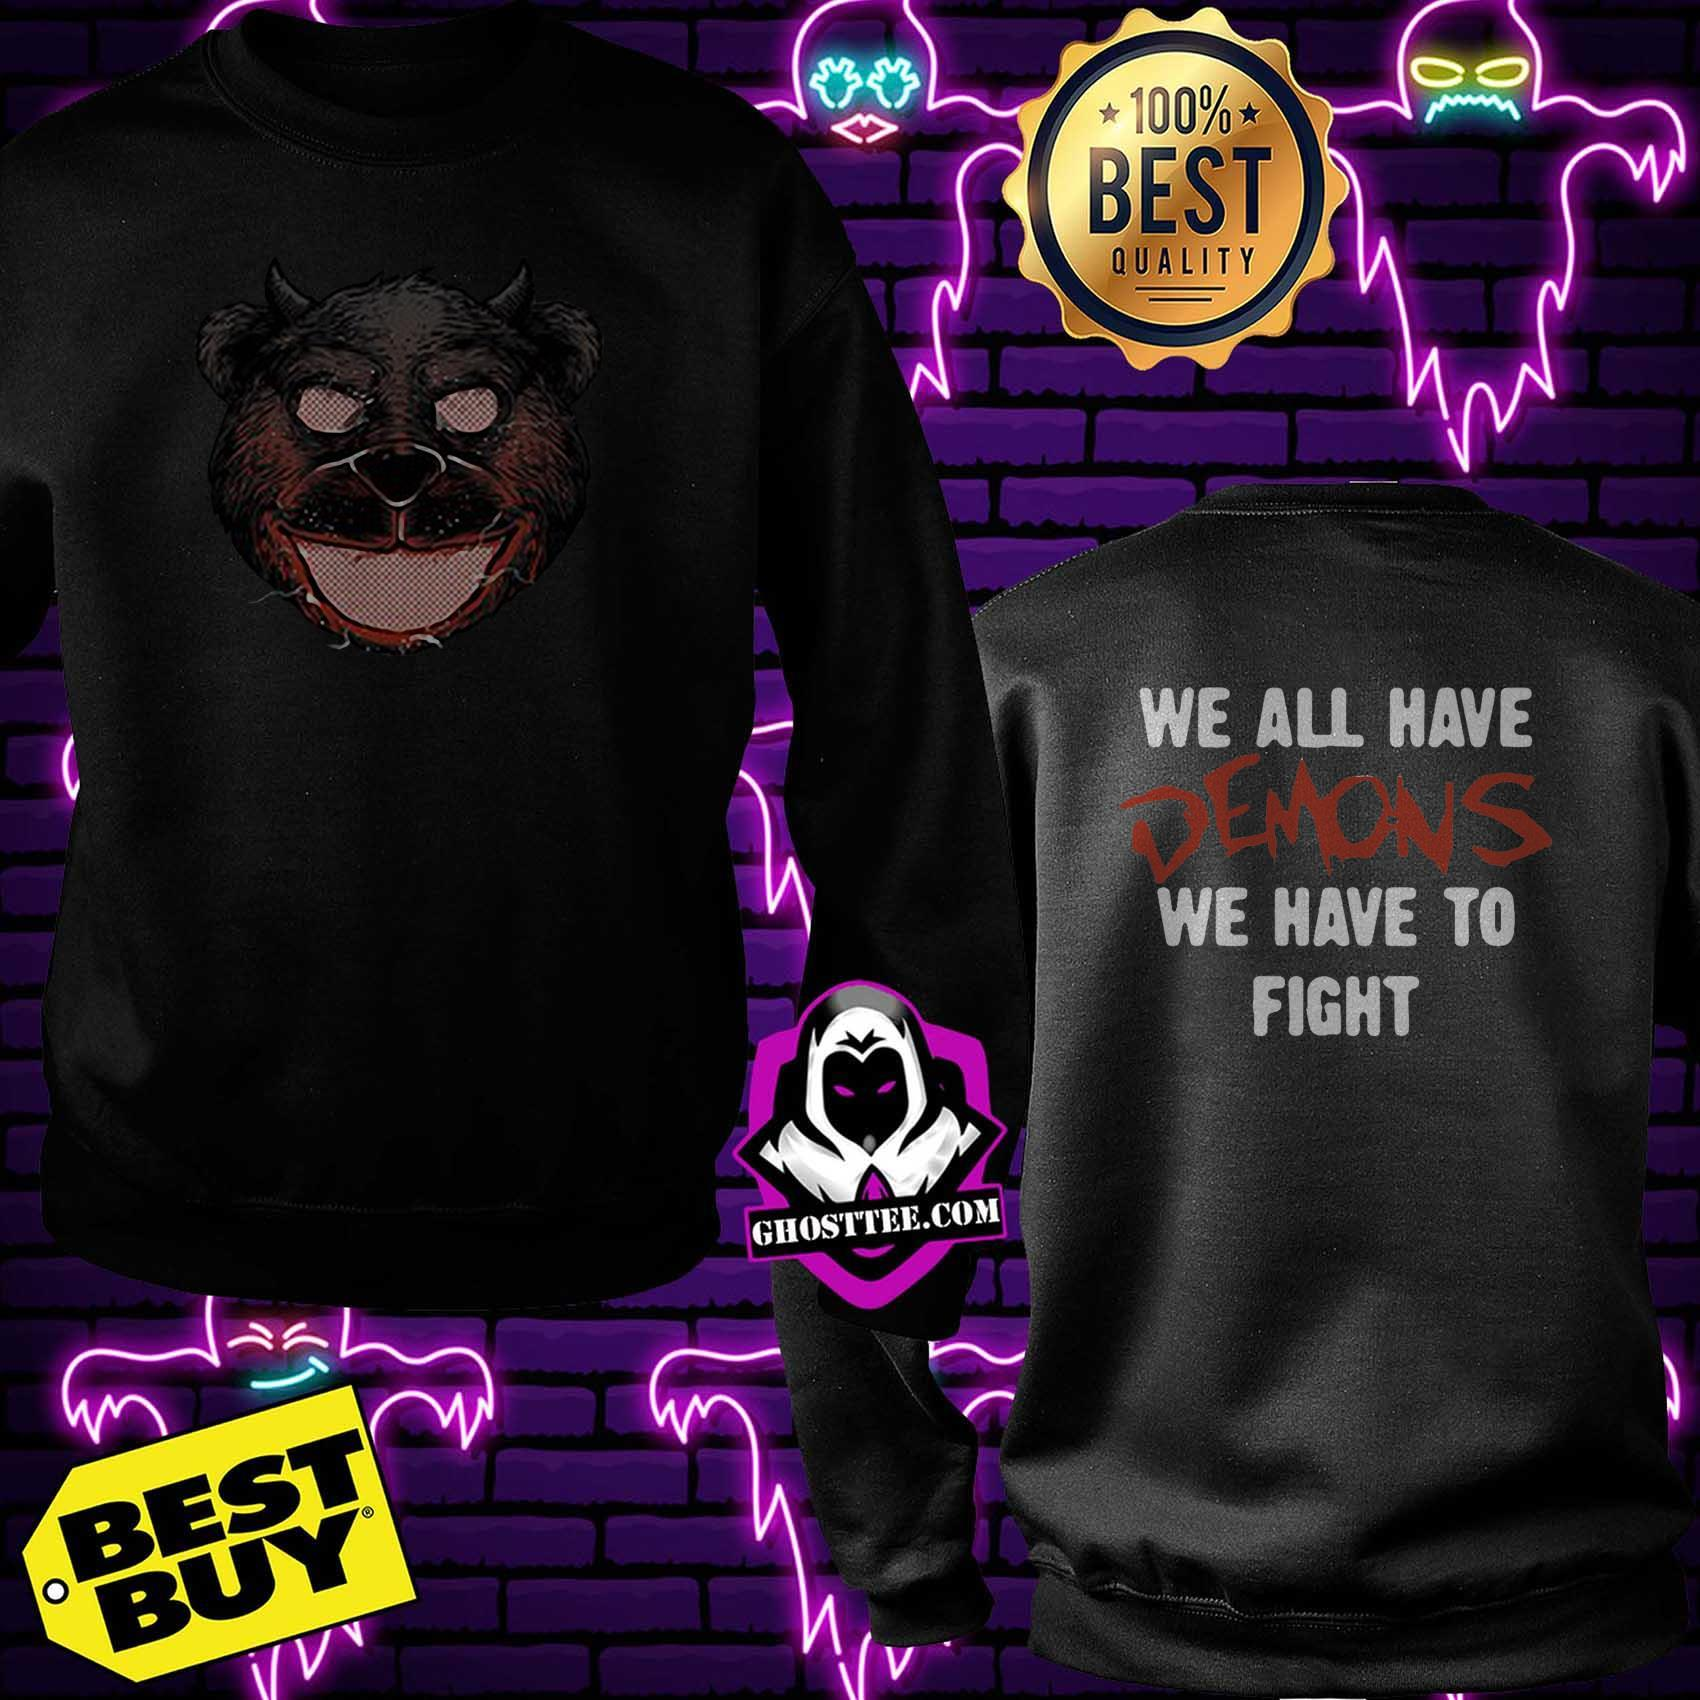 bear grillz we all have demons we have to fight sweatshirt - Bear Grillz we all have Demons we have to fight shirt